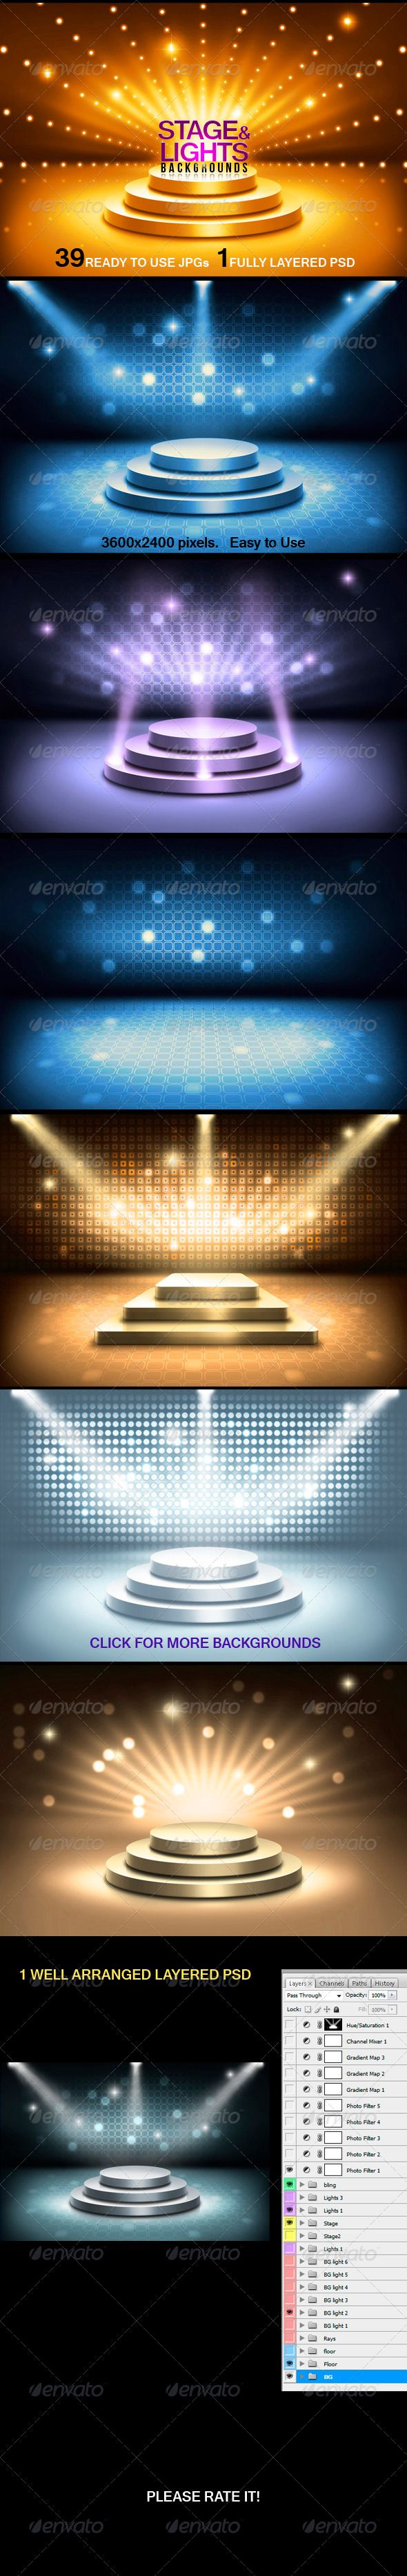 Stage and Lights Backgrounds - #3D #Backgrounds